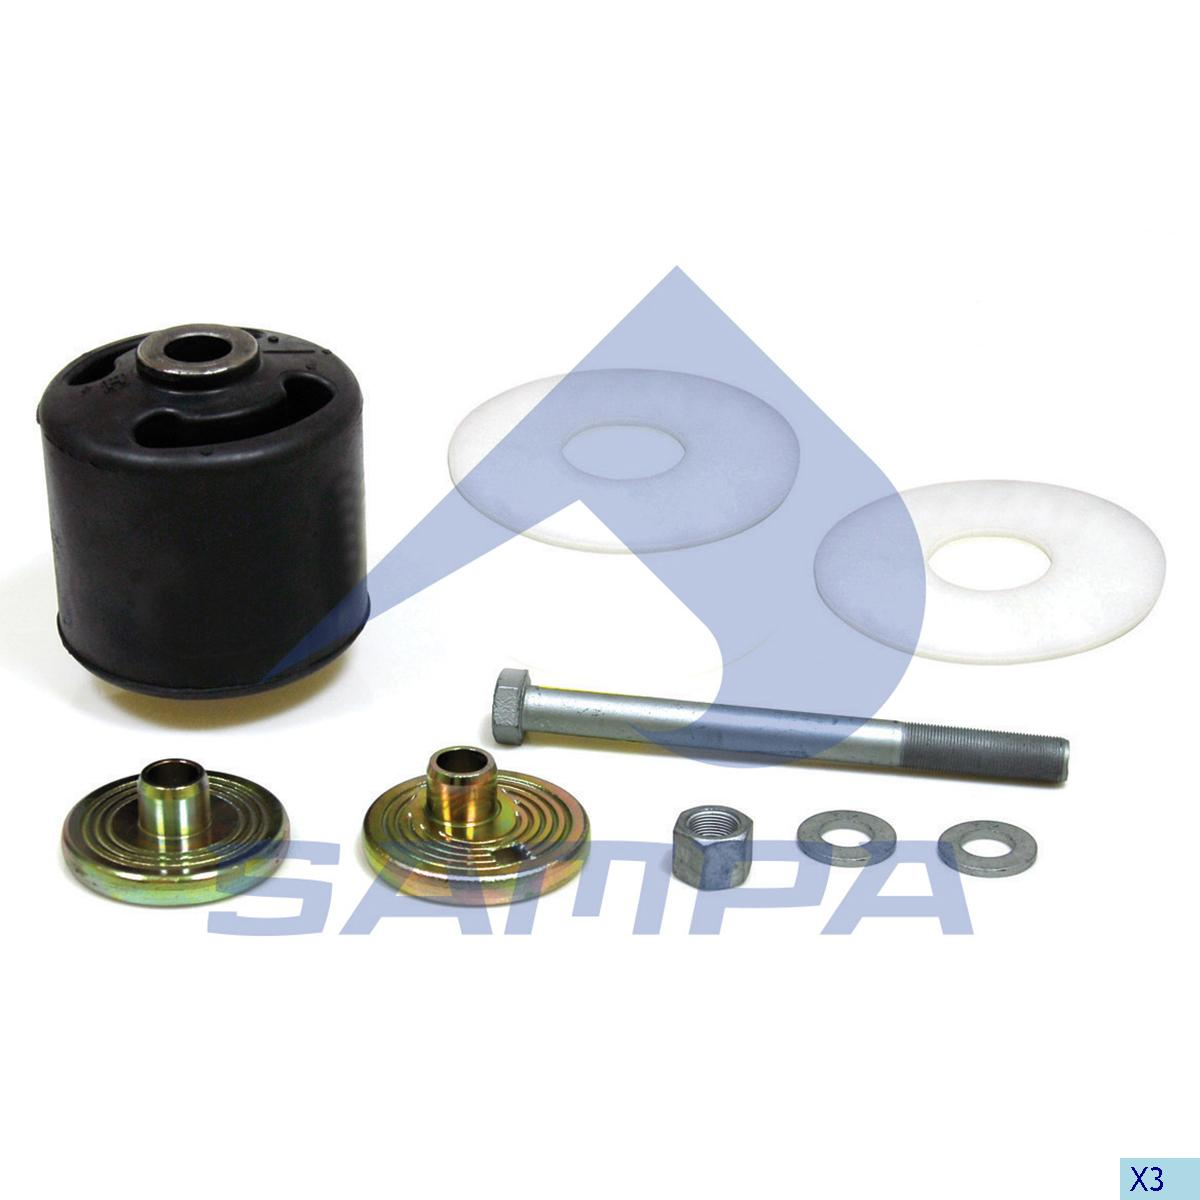 Repair Kit, Balance Arm Axle, Sauer Achsen, Power Unit